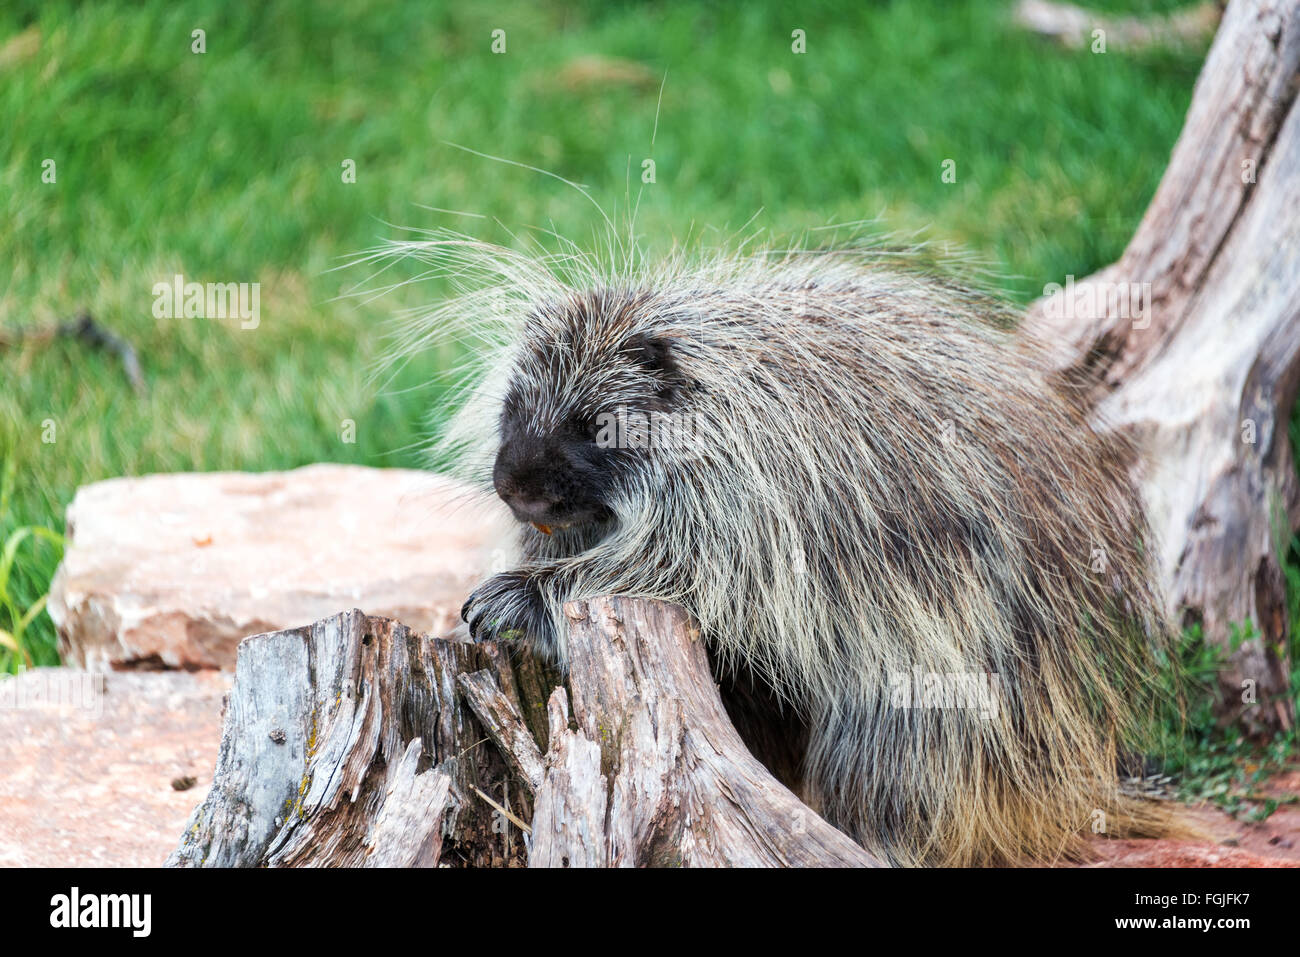 Closeup view of a porcupine - Stock Image